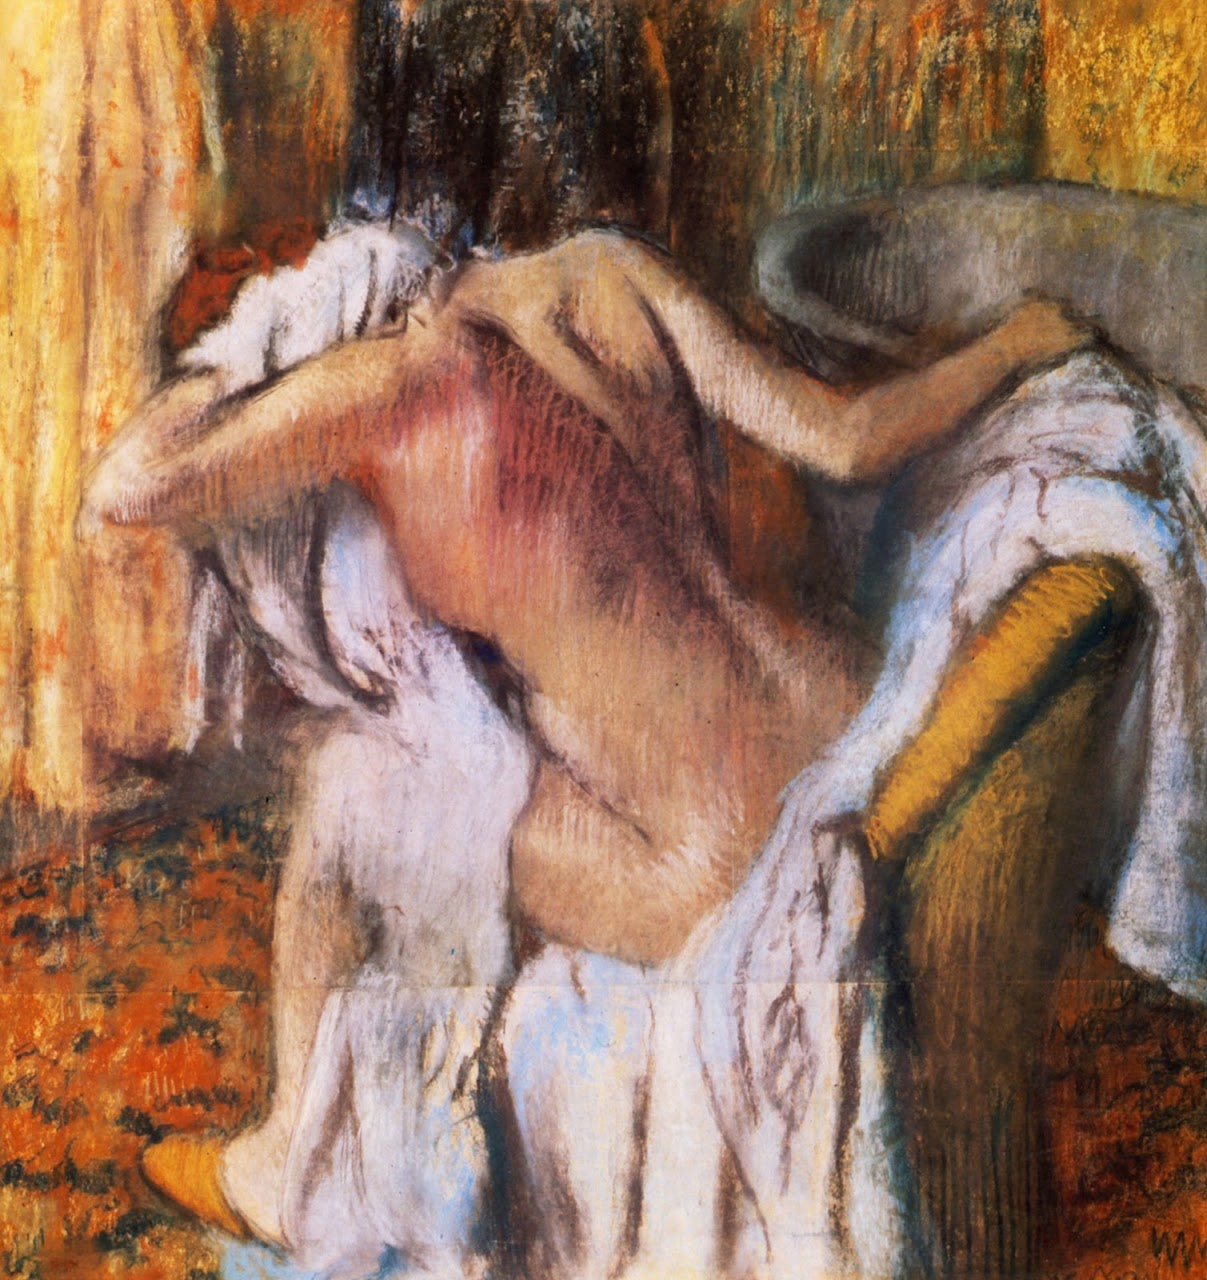 http://4.bp.blogspot.com/-CQqrbV7Tkb4/T6G2-3b0fbI/AAAAAAAAASw/lPHkeCdco1w/s1600/Edgar+Degas,+After+bath+woman+drying+herself,+1890-95,+National+Gallery.jpg